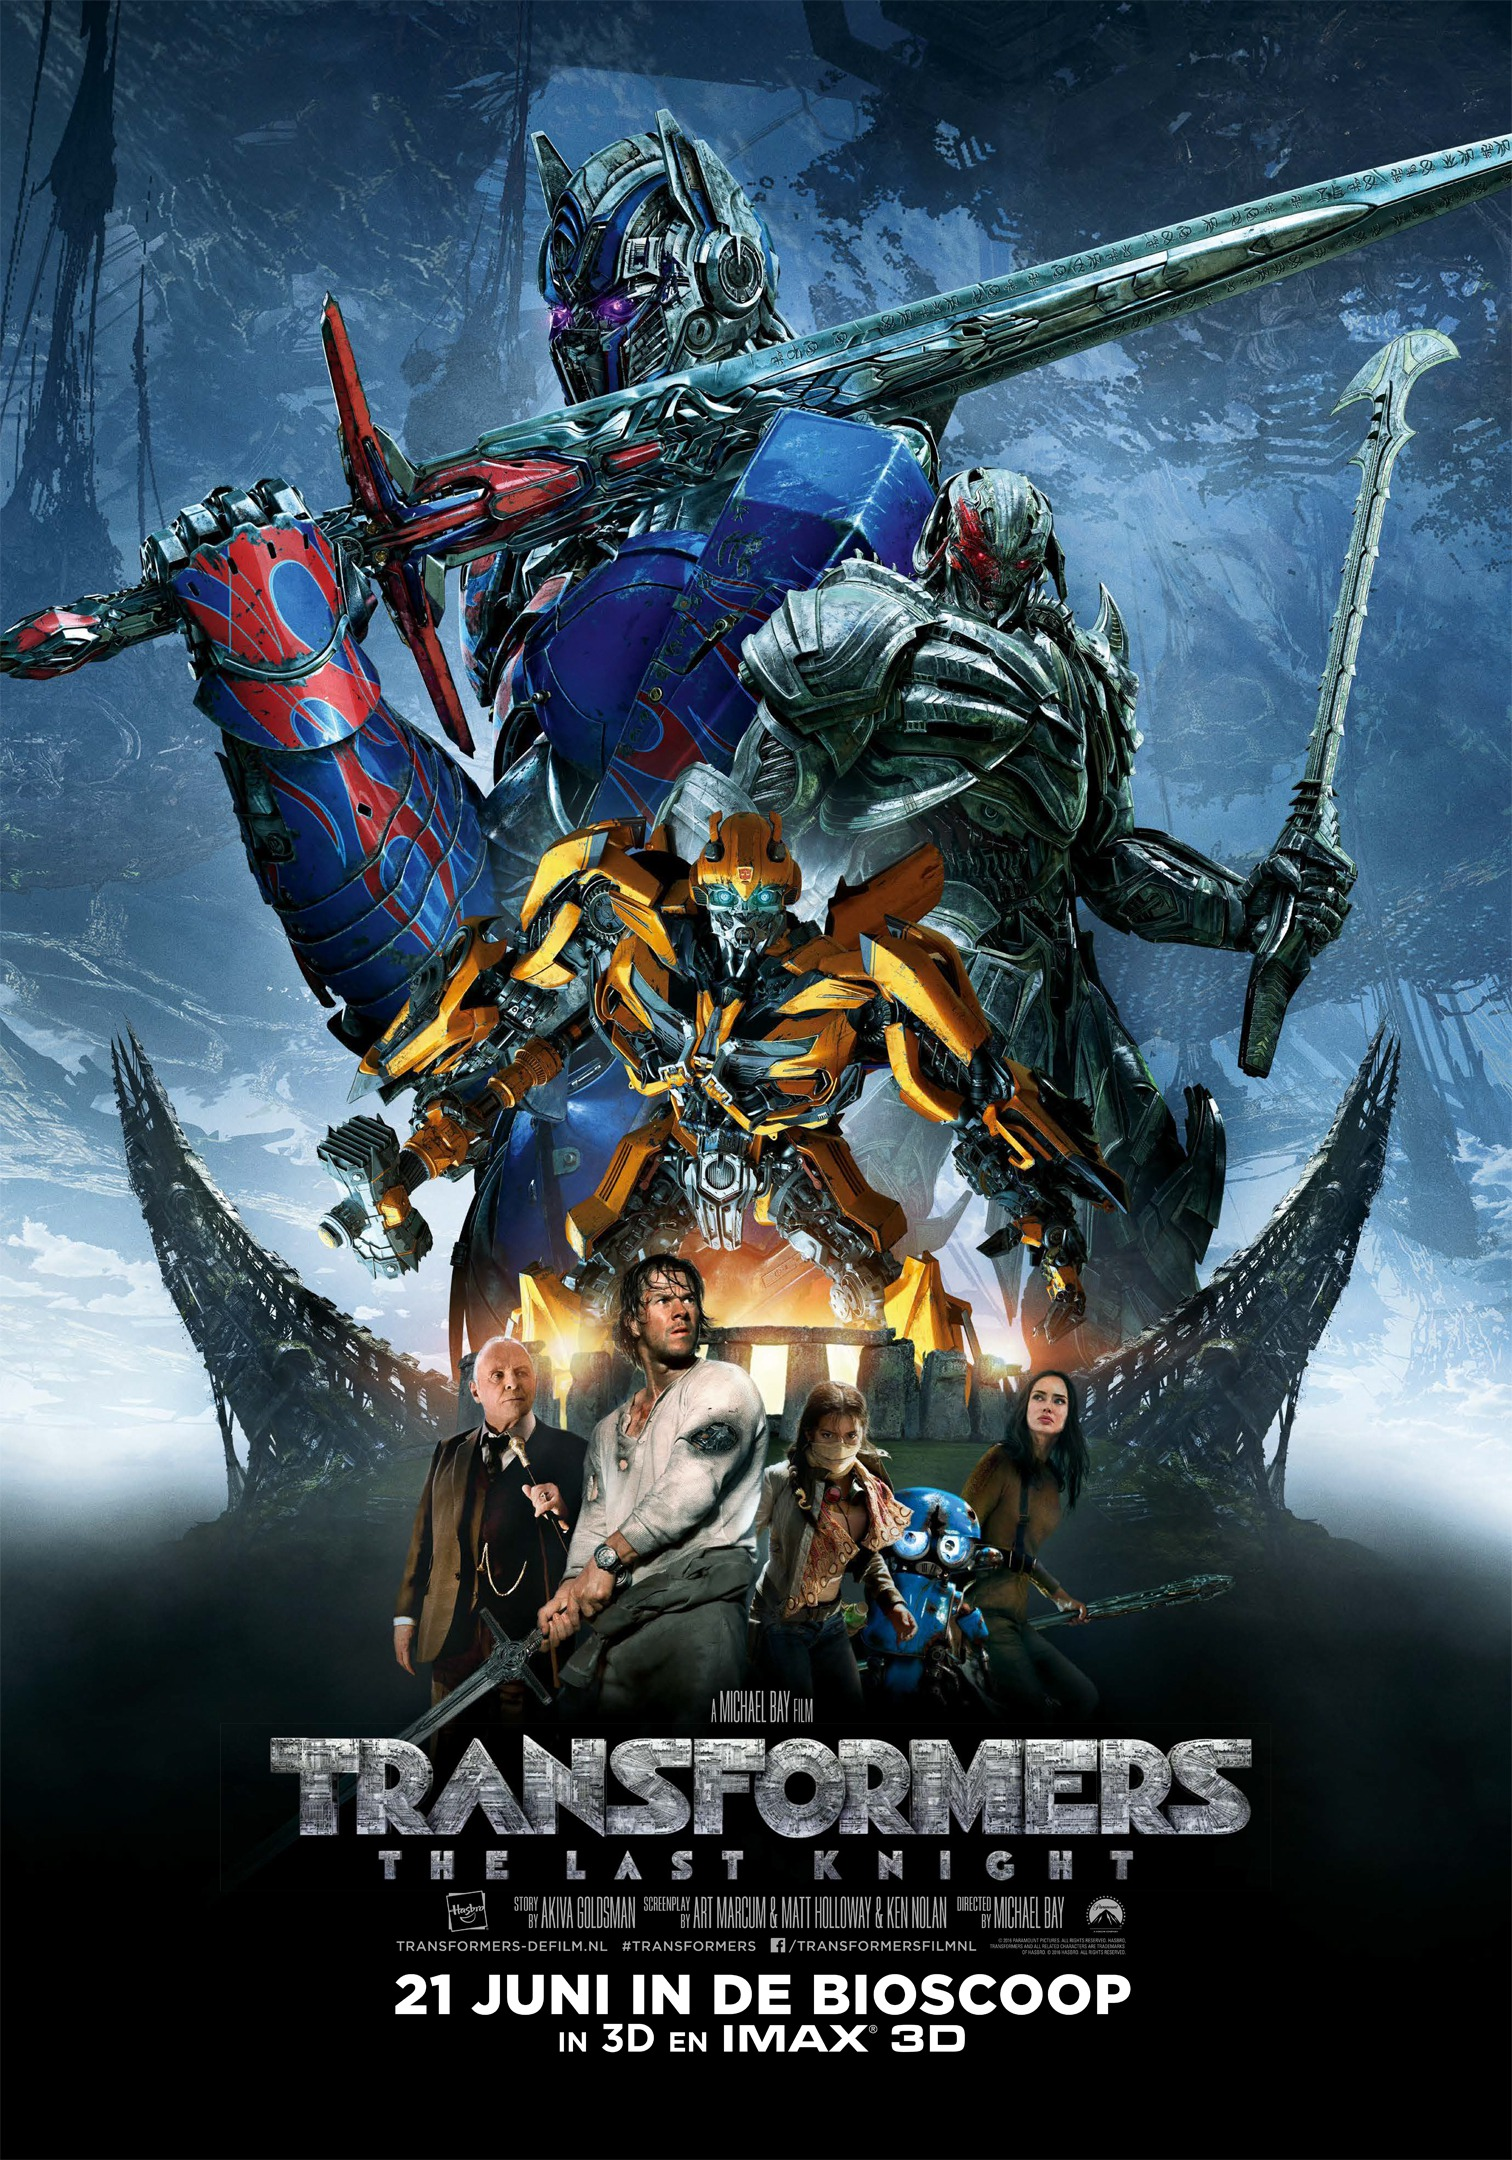 image - transformers 5 poster 6 | moviepedia | fandom powered